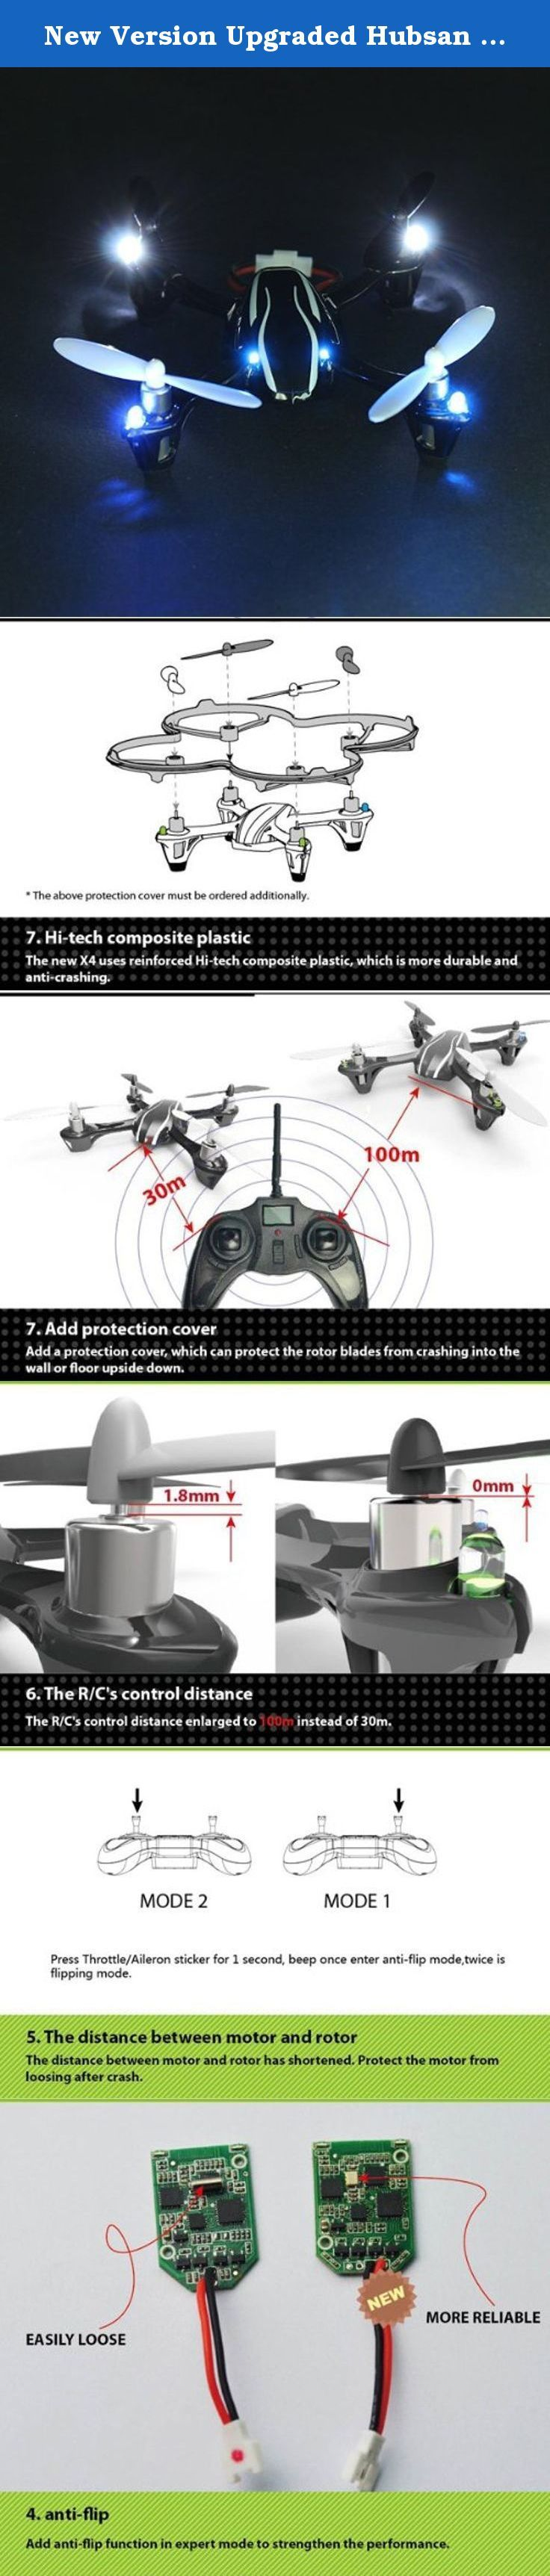 New Version Upgraded Hubsan X4 H107L 2.4G 4CH RC Quadcopter RTF with LCD Radio Controller. Description: Brand Name: Hubsan Item No.H107L Item Name: Upgraded Hubsan X4 RC Quadcopter Motor (x4): Coreless Motor Frequency: 2.4GHz Battery: 3.7V 240mAh Flight time: above 9 minutes Charging time:30 minutes Features: Latest 6-axis flight control system with adjustable gyro sensitivity Permits super stable flight Lightweight airframe with nice durability 4-ways flip(left,right,forward,backward)…